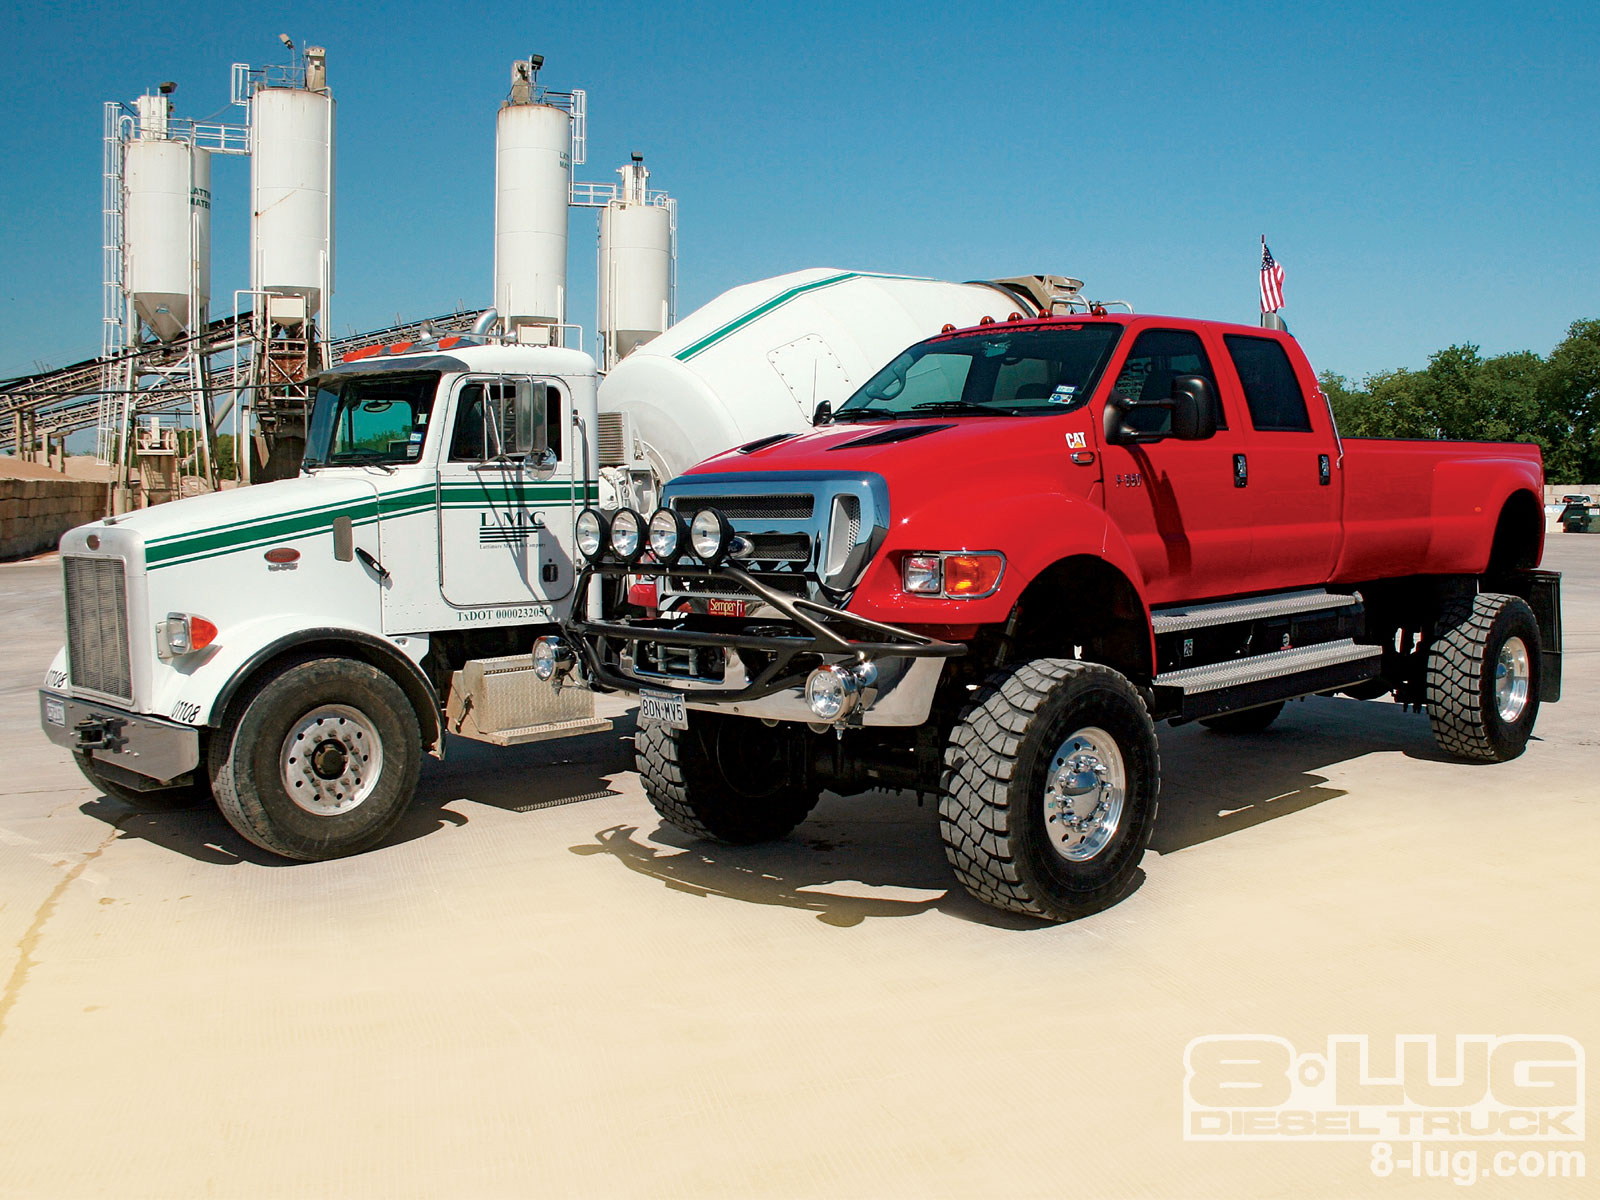 2006 Ford F650 - Serious Business Photo & Image Gallery | Ford F650 Transmission Wiring |  | Truck Trend